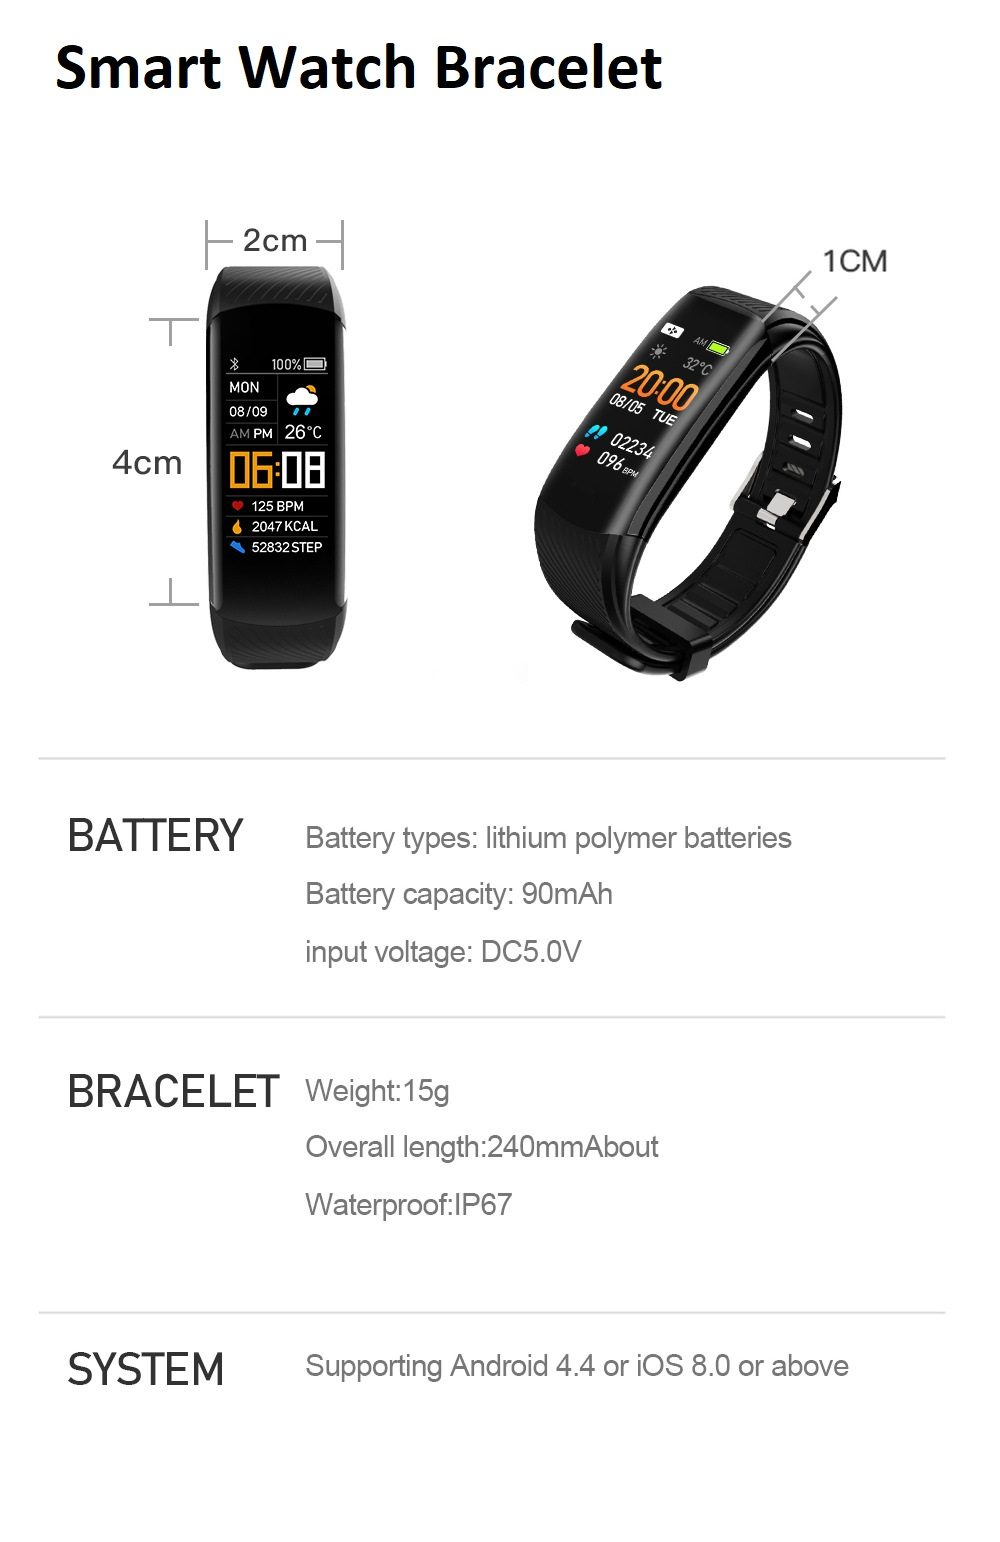 YoMi Smart Watch Bracelet with Bluetooth, smartwatch, smartphone, jam tangan, lelaki, perempuan, men, women, sports,running, heart rate monitor, alarlm, HD